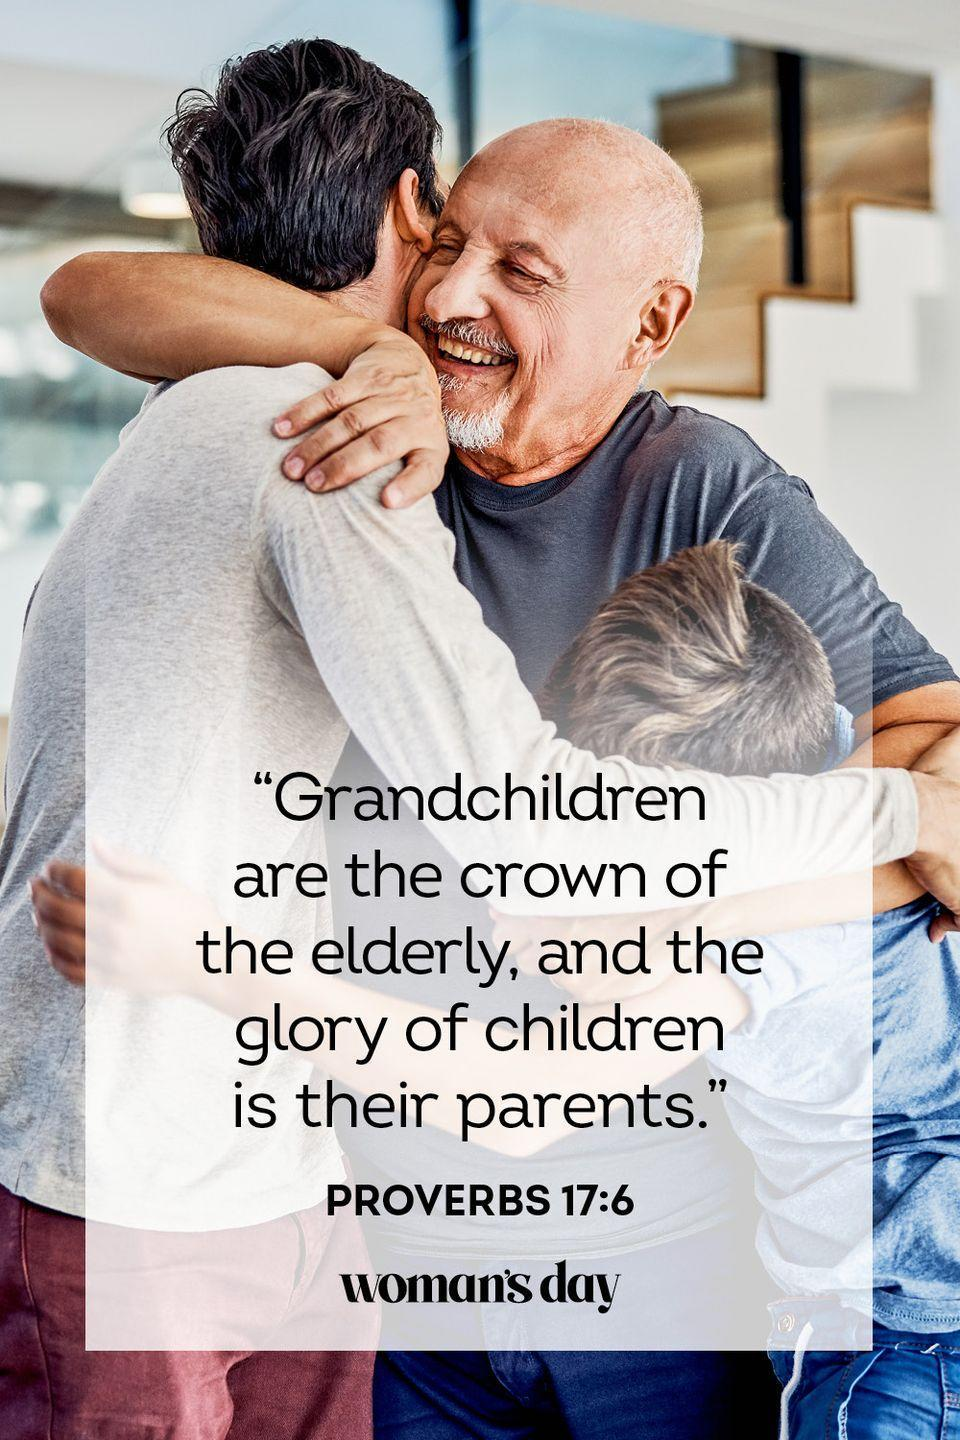 """<p>""""Grandchildren are the crown of the elderly, and the glory of children is their parents.""""</p><p><strong>The Good News: </strong>You may be your dad's crowning glory as a child, but as you get older, you can also appreciate your parents the same way they loved you as a kid. Dad did so much for you, and when you reach adulthood it's easy to see all the effort that went into raising you. Send him a little extra love this Father's Day in return.</p>"""